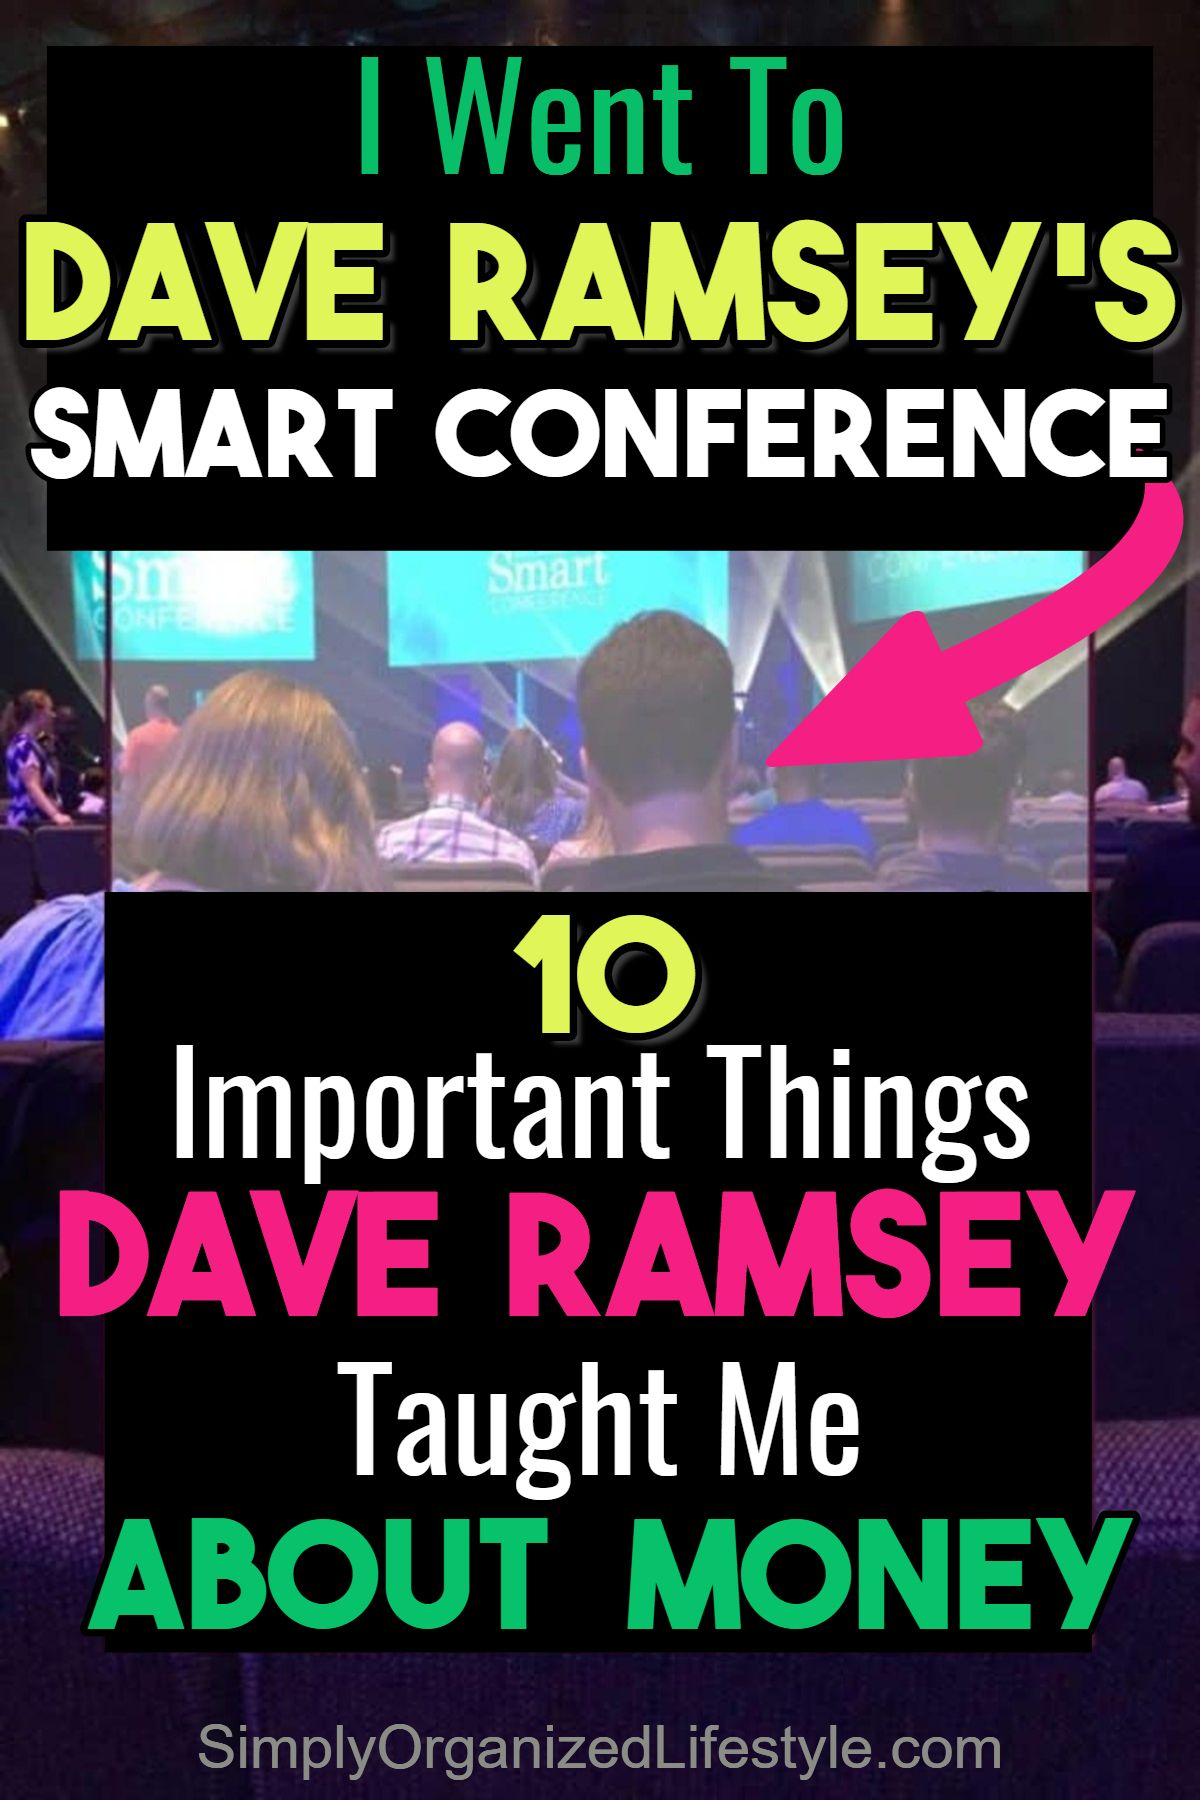 Top 10 Takeaways Dave Ramsey Smart Conference With